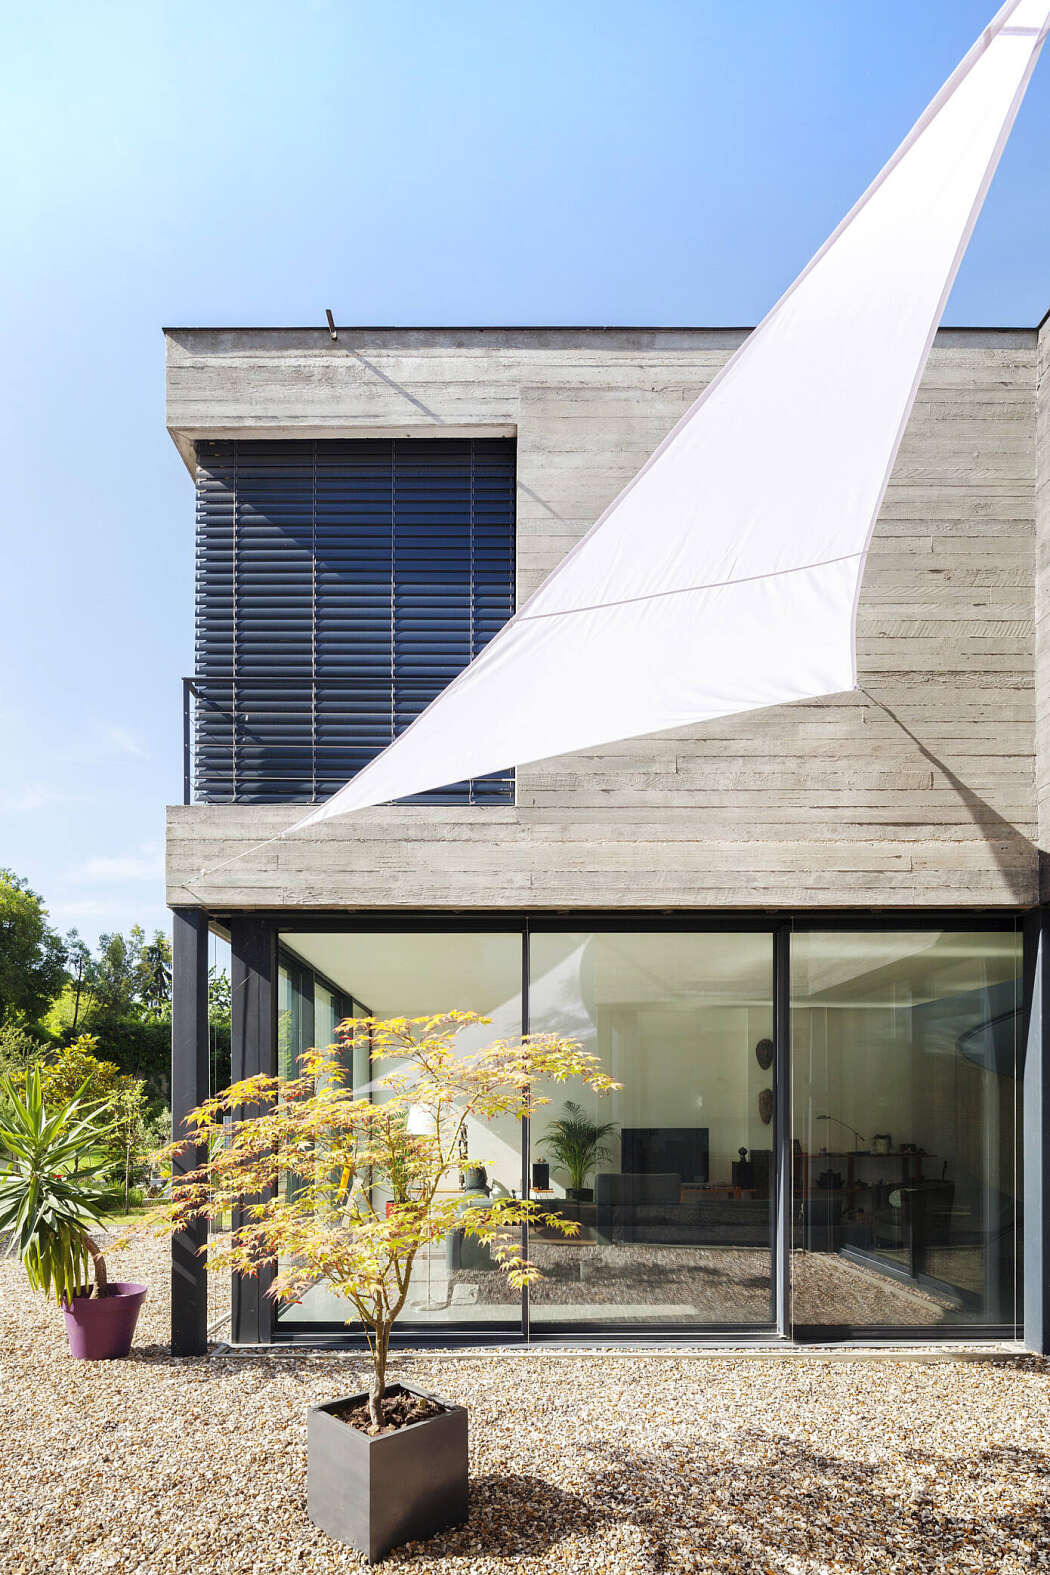 Concrete and Glass House Inspirational Concrete and Glass House by Skp Architecture